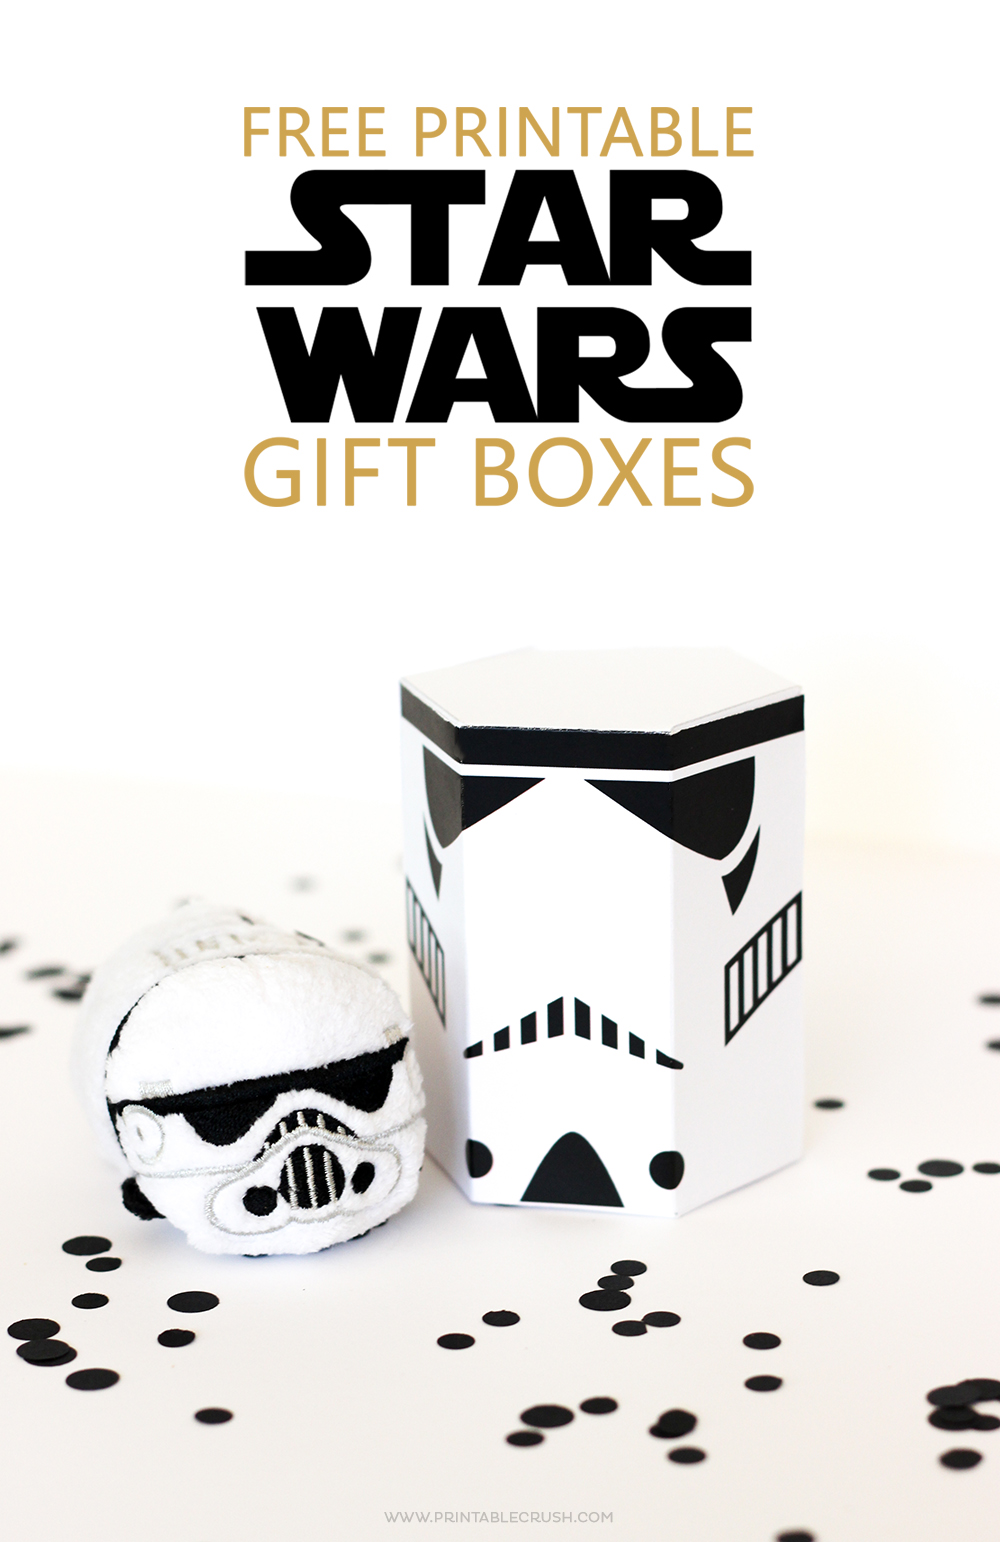 photograph about Star Wars Free Printable referred to as No cost Star Wars Printable Present Bins - Printable Crush